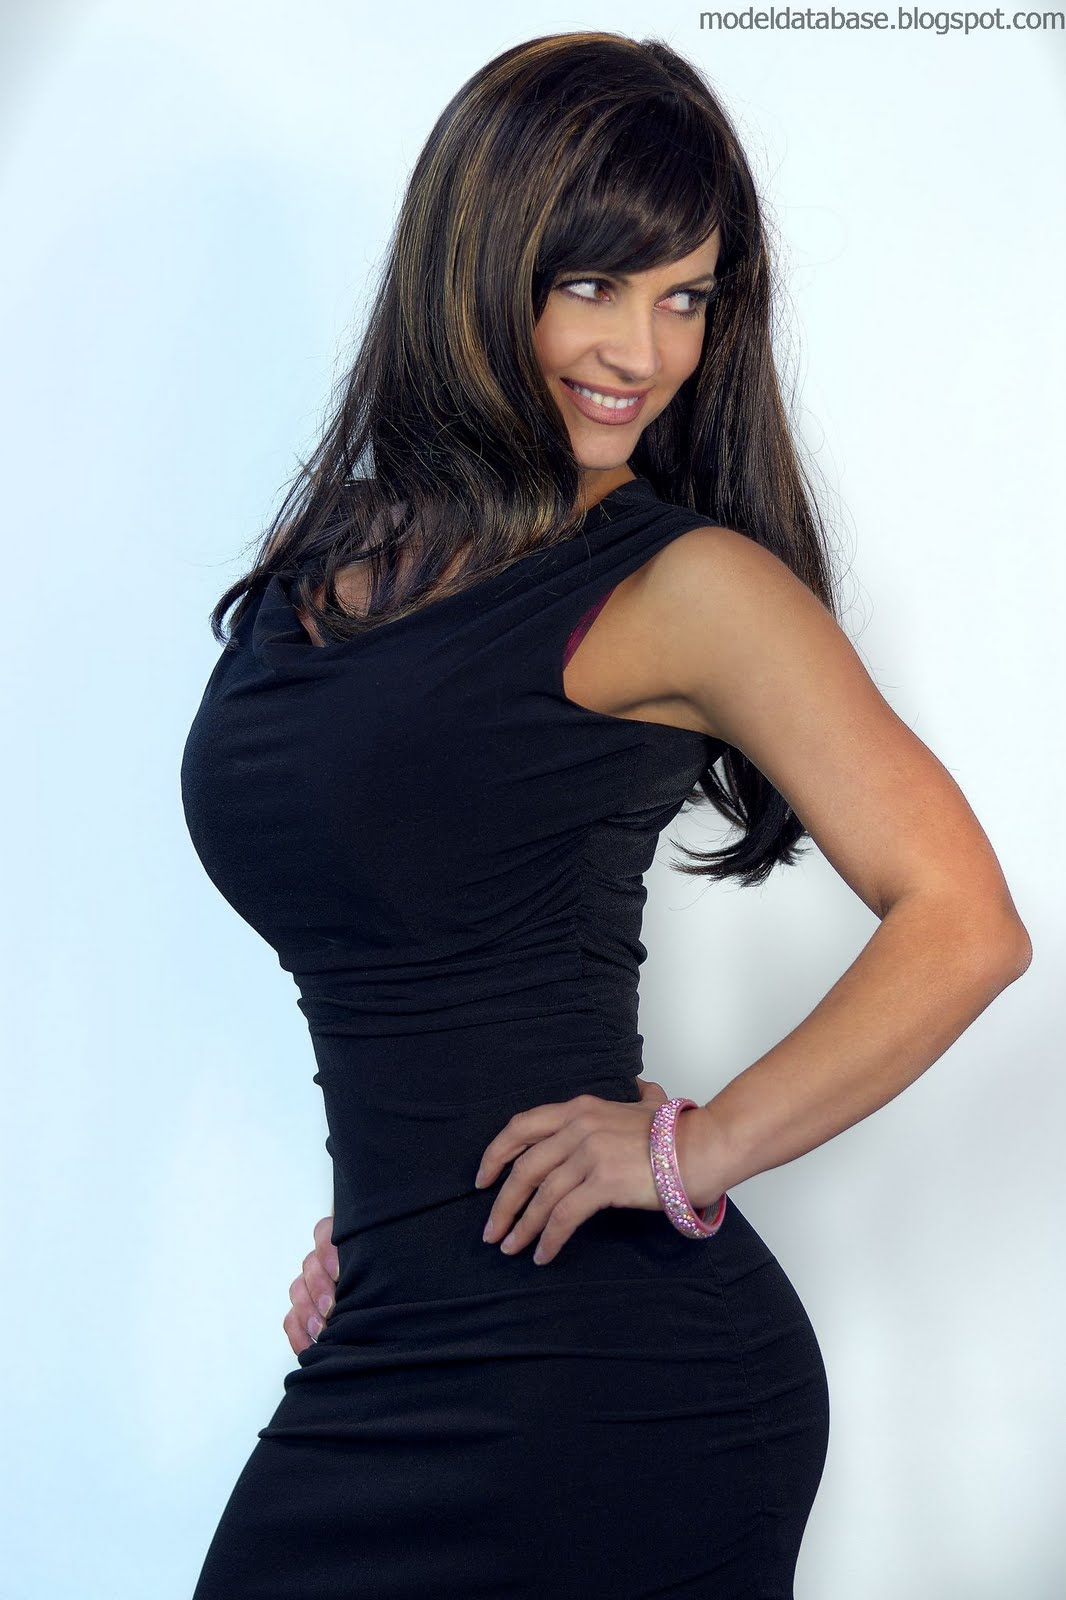 denise milani in a dress - photo #46